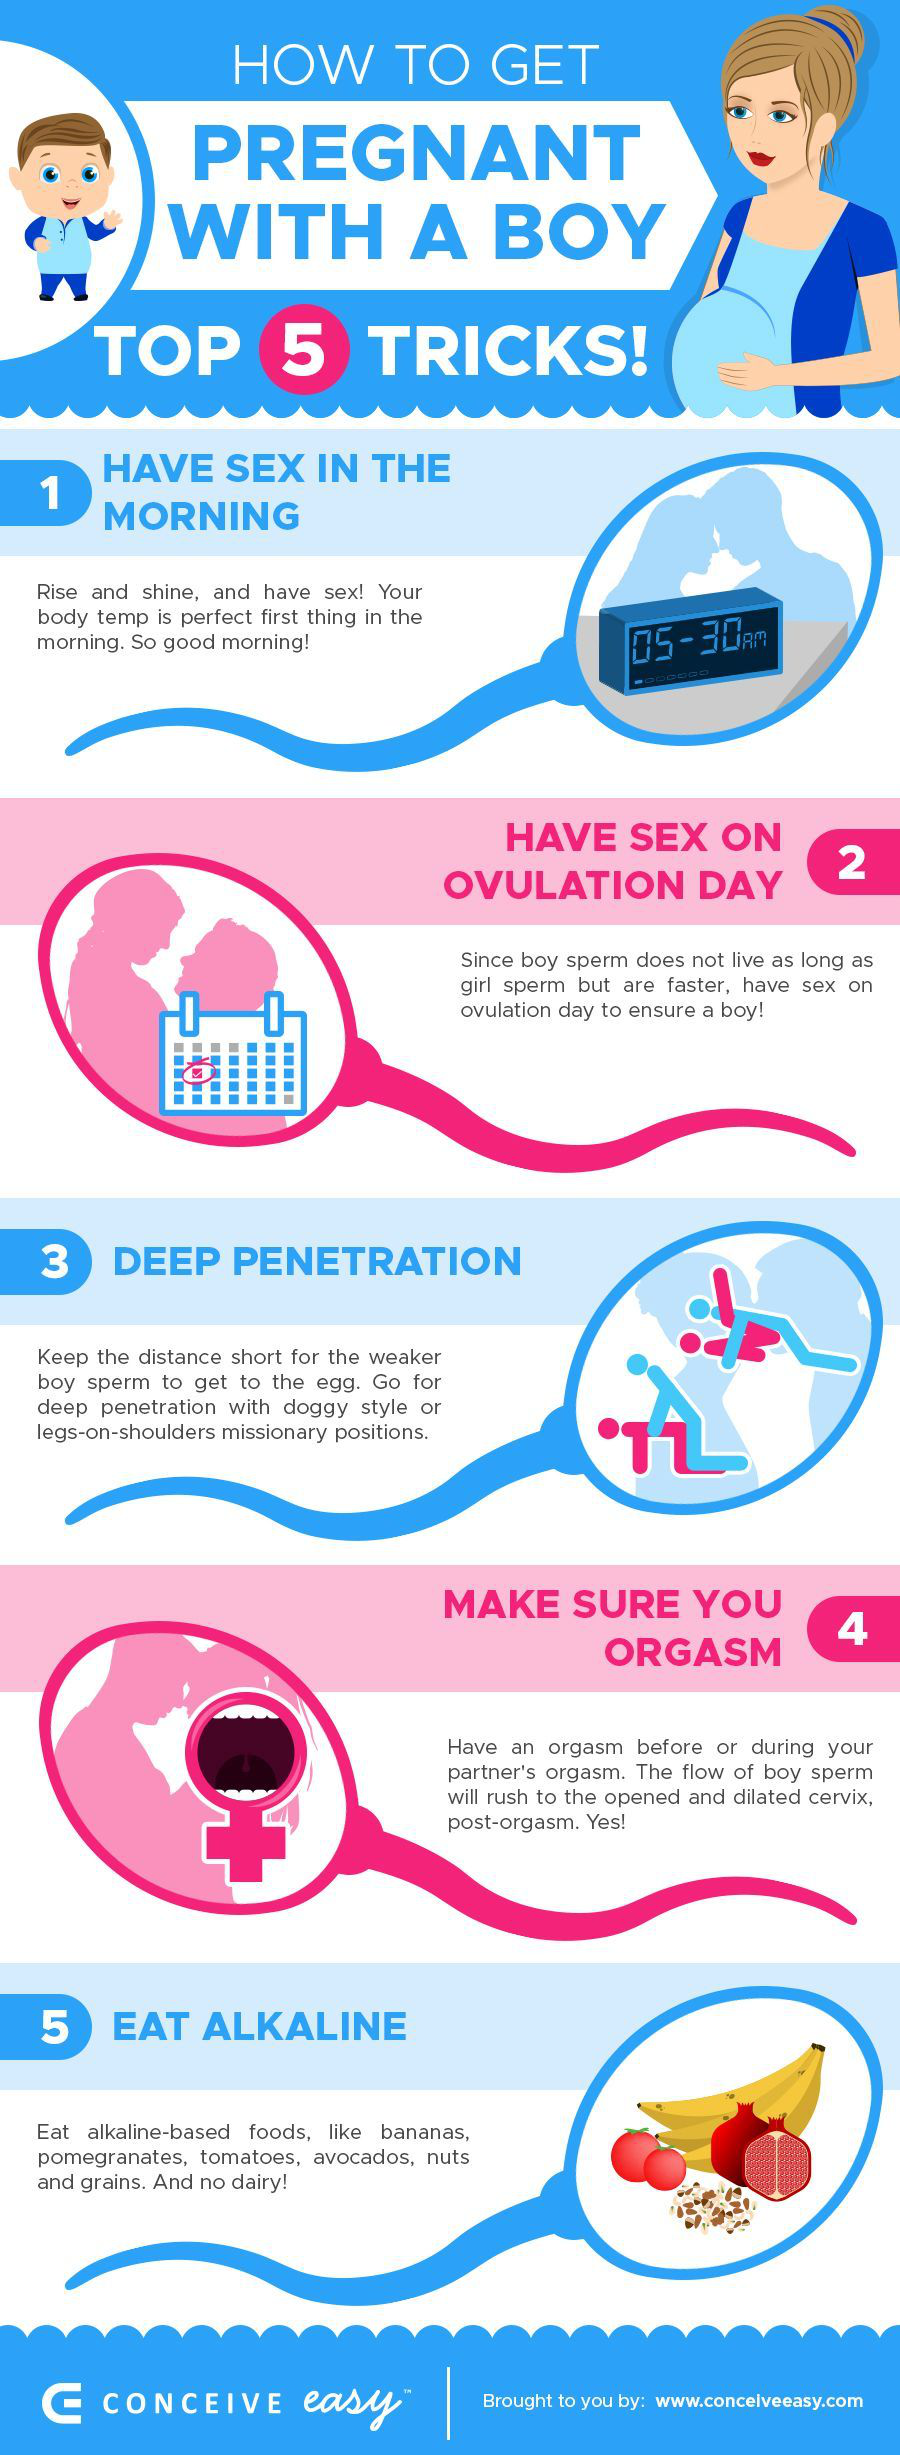 5 Tricks How to Get Pregnant with a Boy Infographic